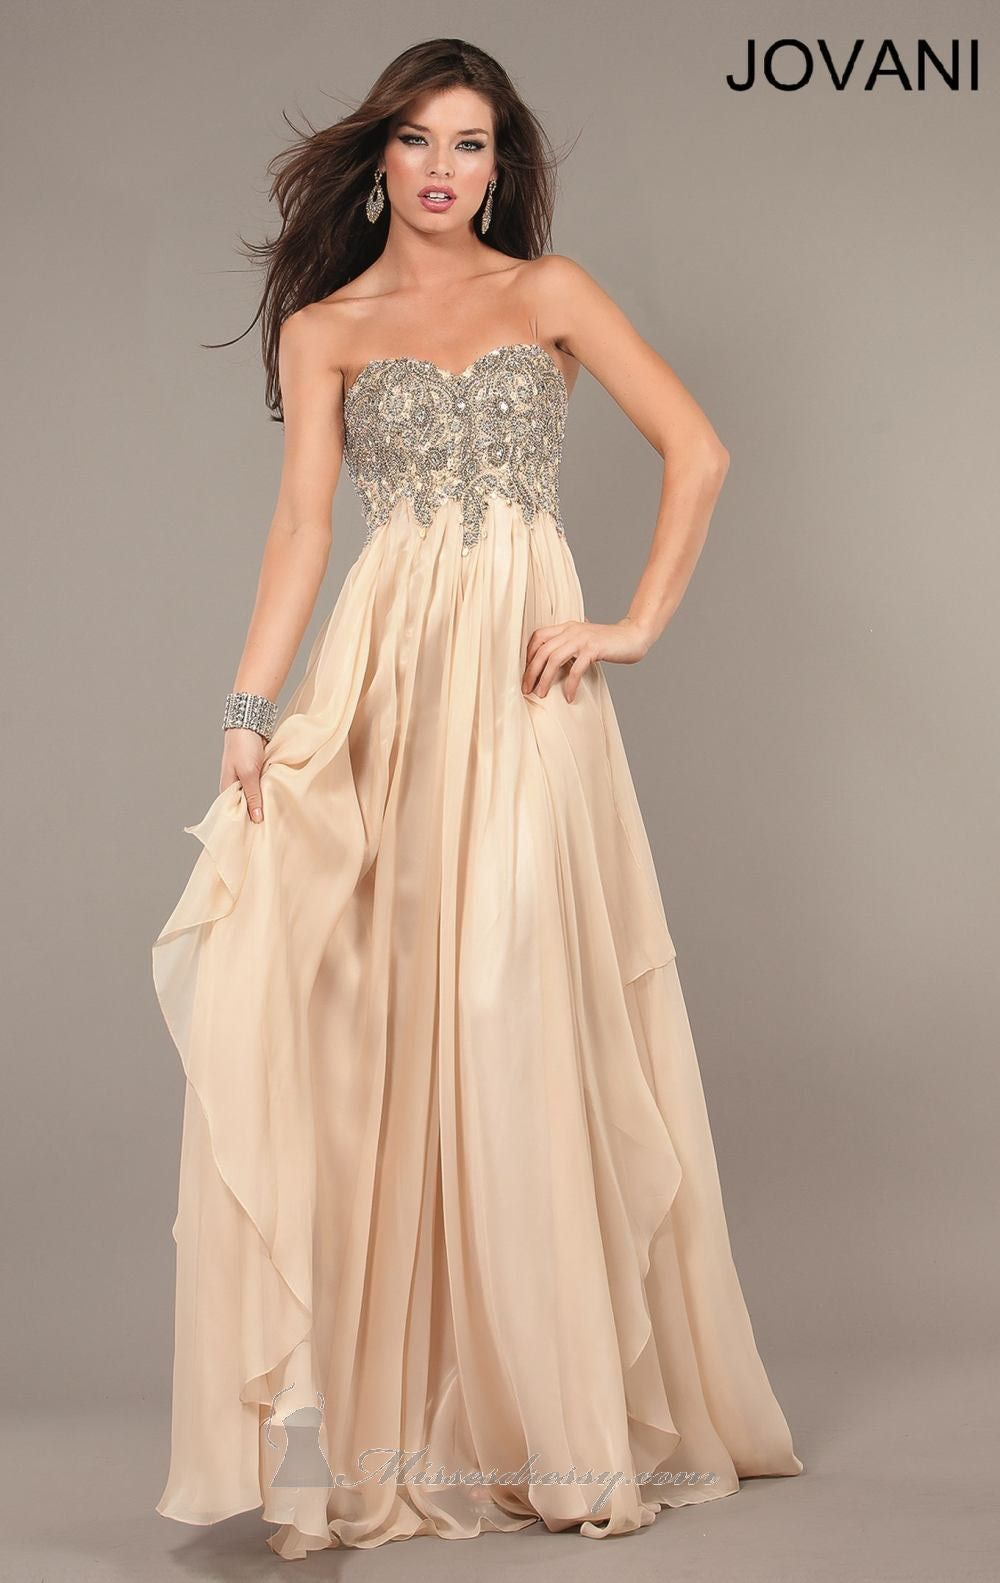 Wedding Champagne Colored Dresses the most popular prom dresses from misses dressy evening dressy